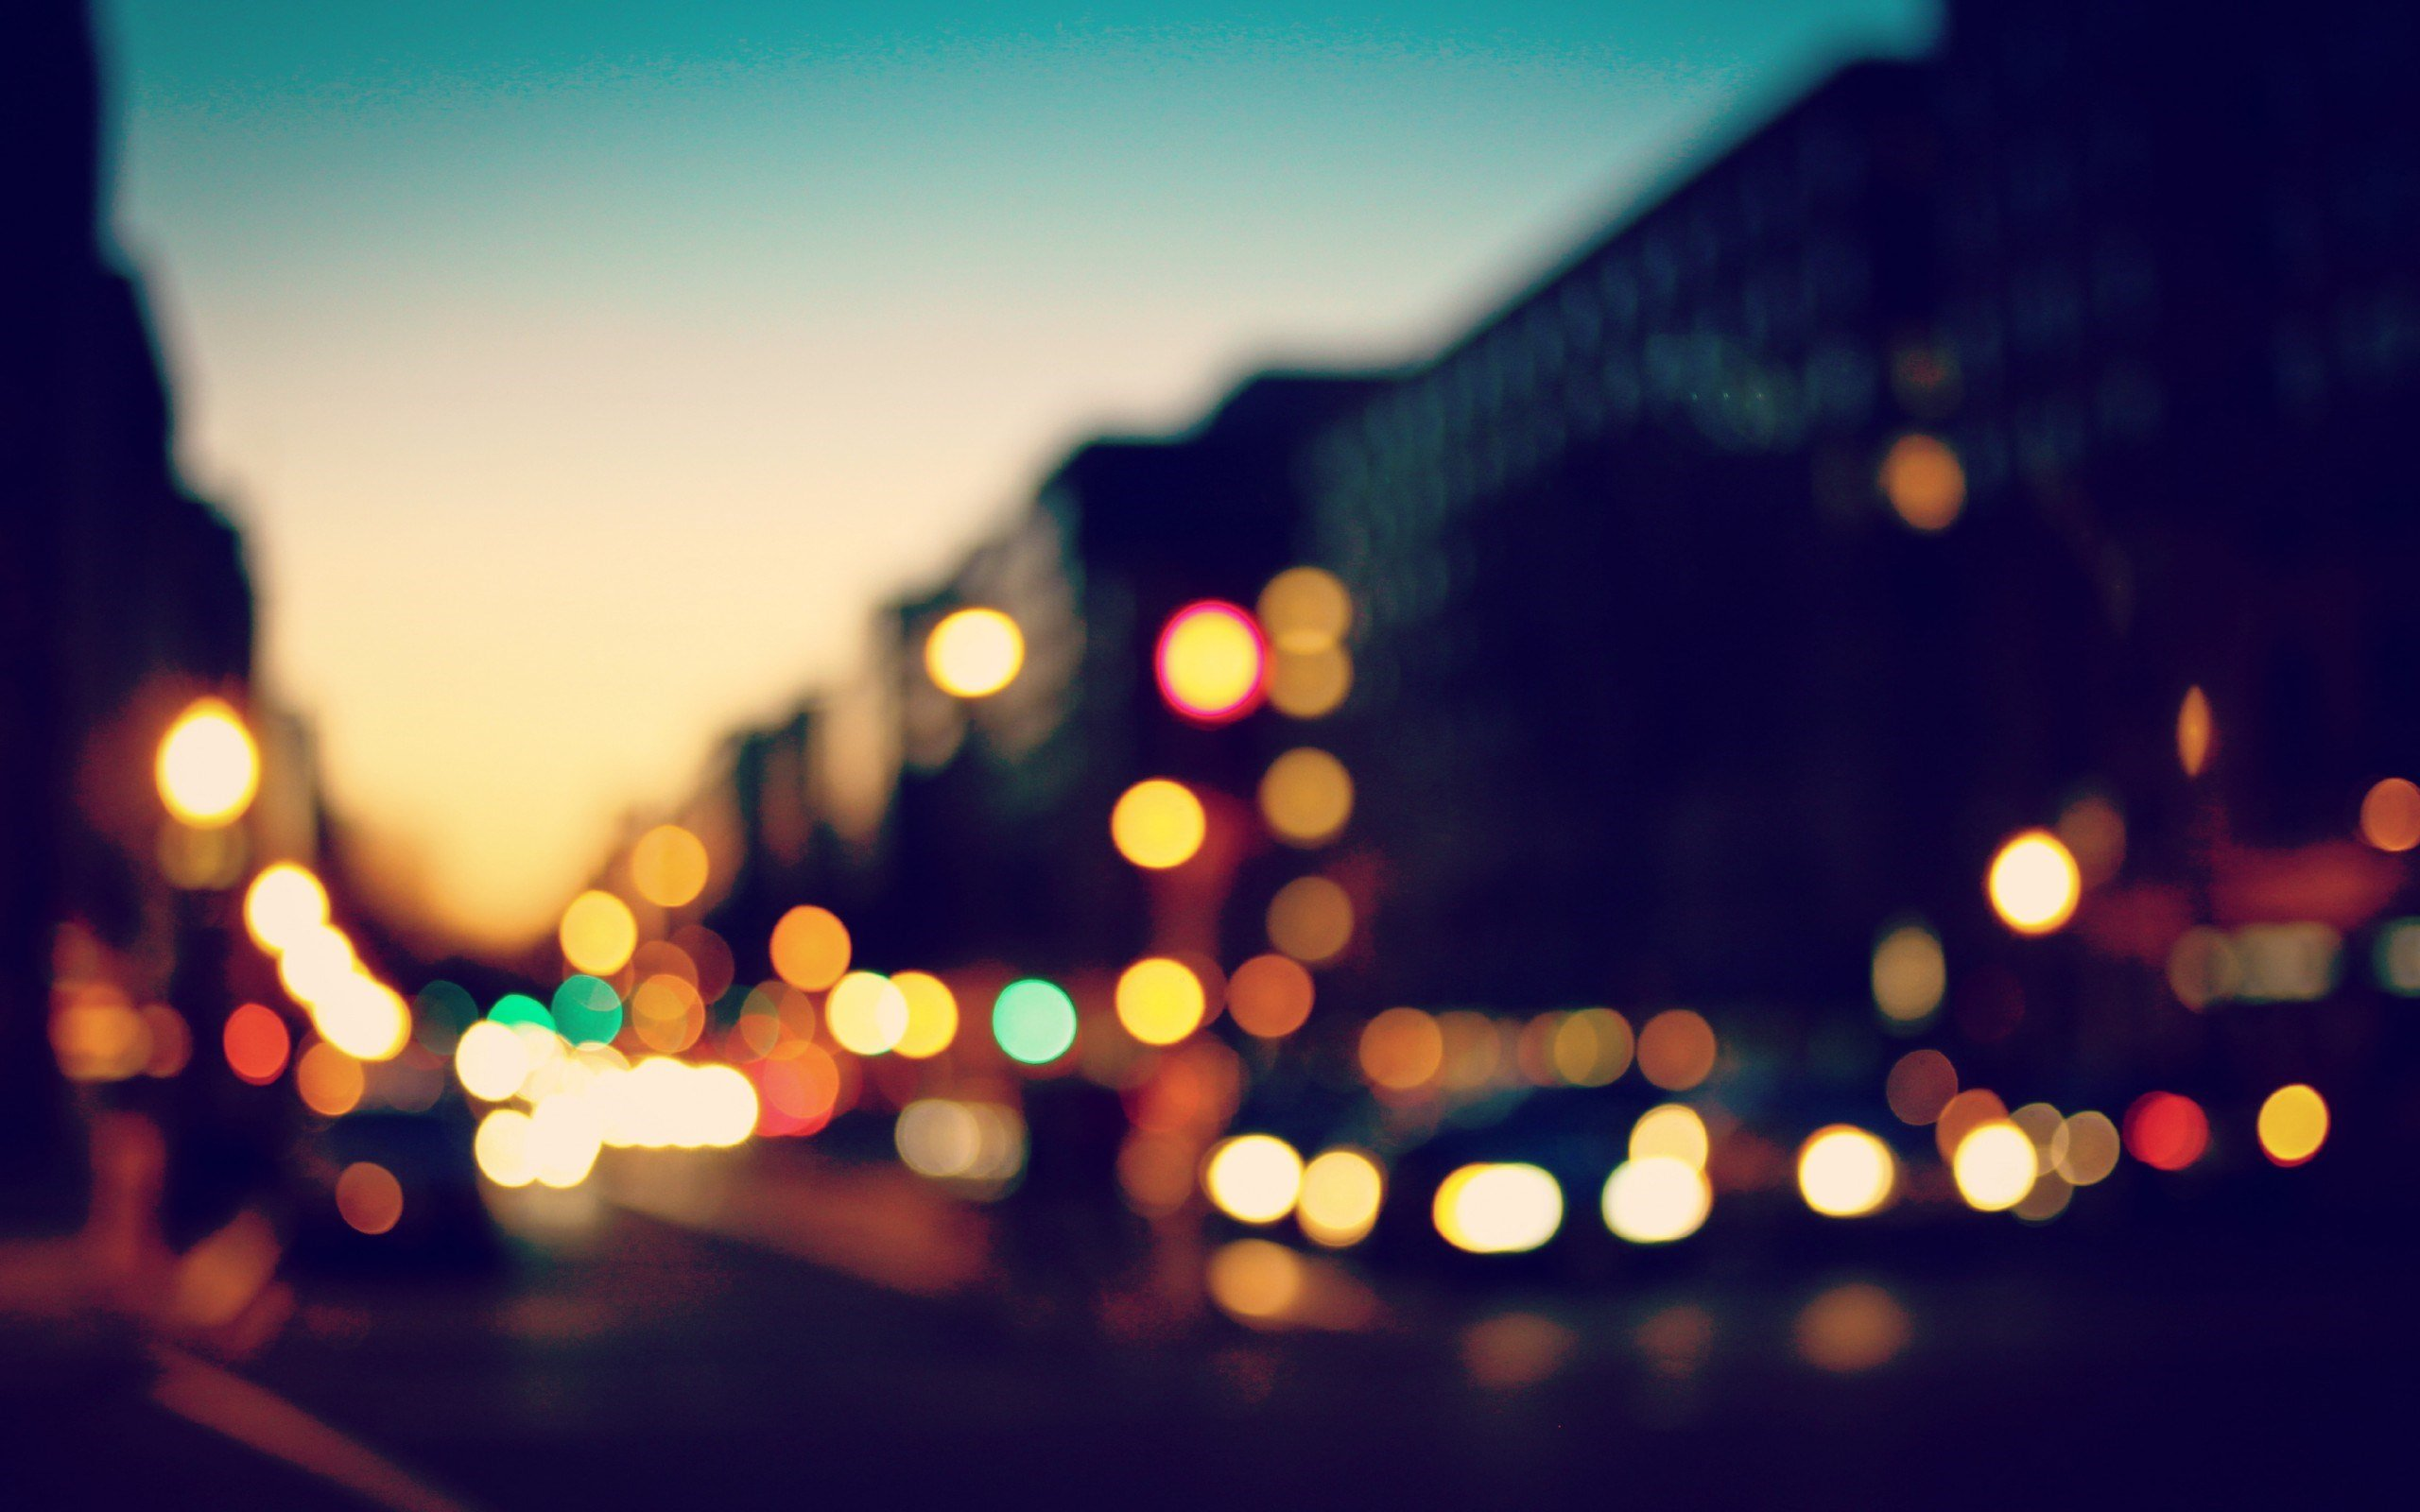 bokeh city lights photo fanciful evening hd wallpaper 2560x1600